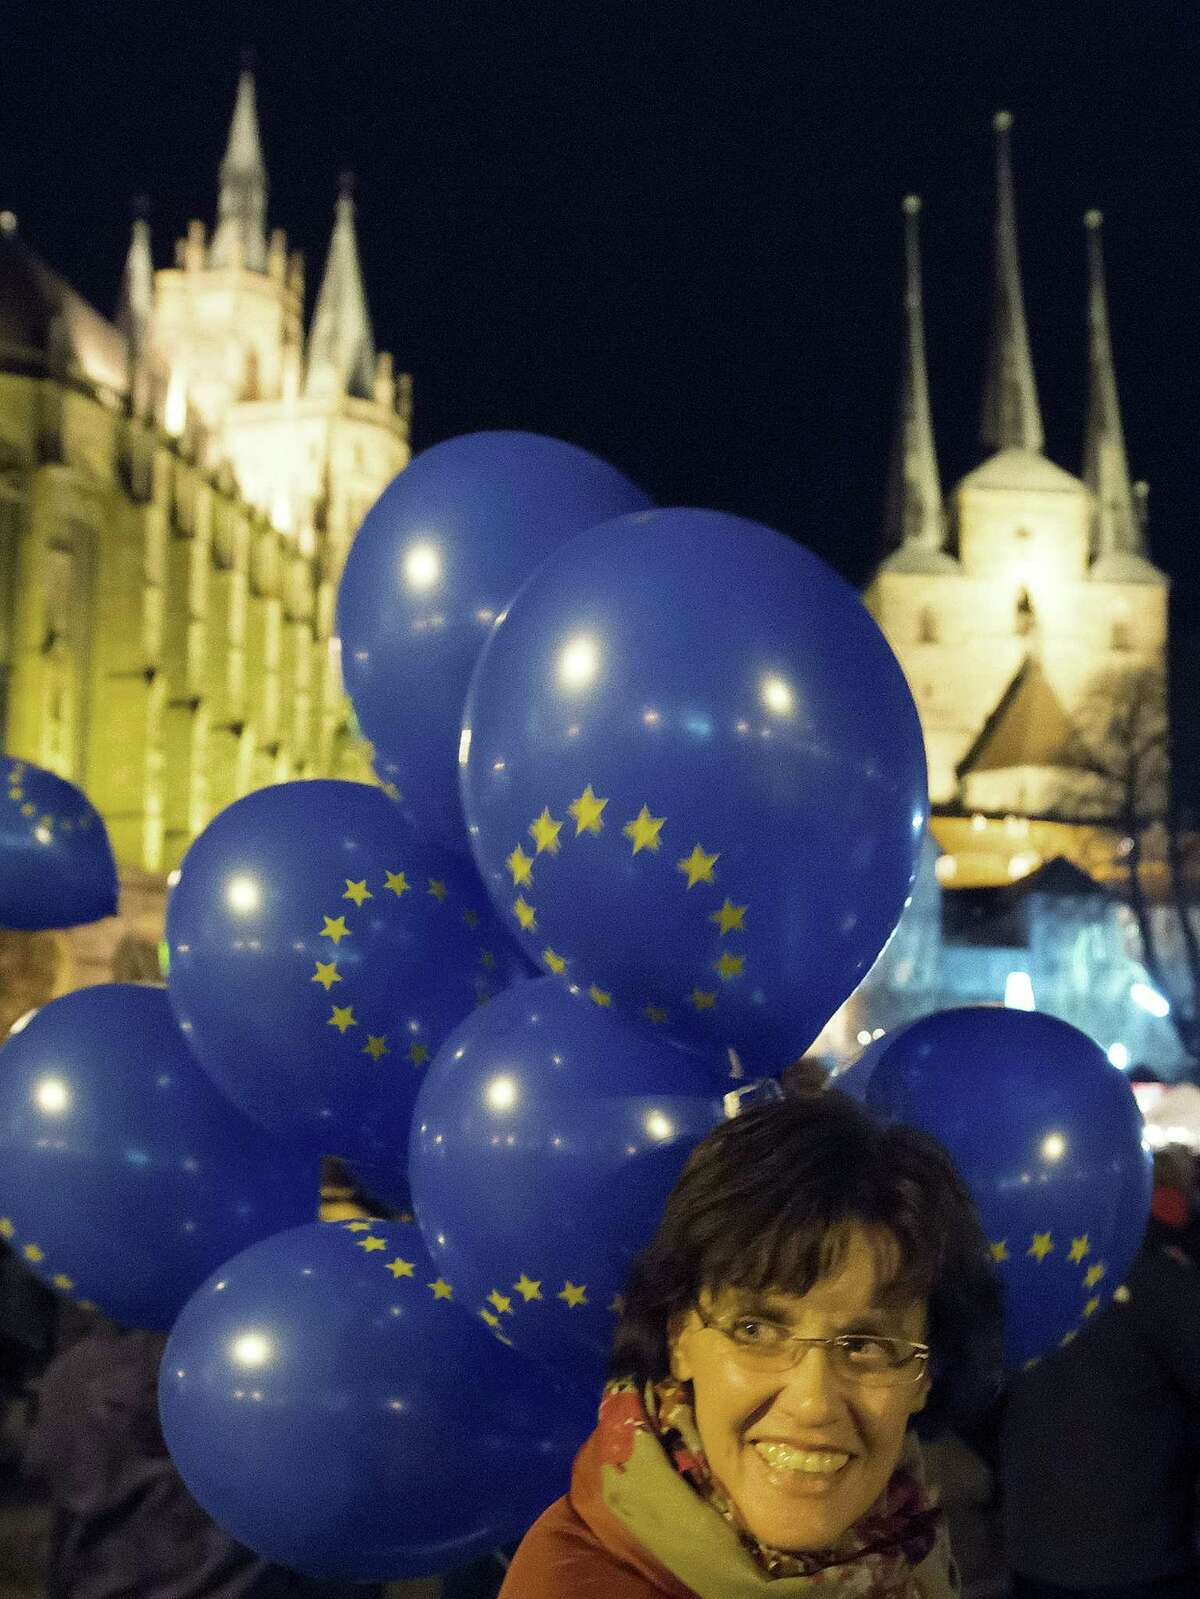 A woman stands in front of balloons with an EU logo as thousands of people demonstrate during a rally of the Alliance for democracy, diversity and human solidarity in Erfurt, central Germany, Monday, Nov. 9, 2015. They demand a better integration of migrants in Germany and condemn any kind of violence.